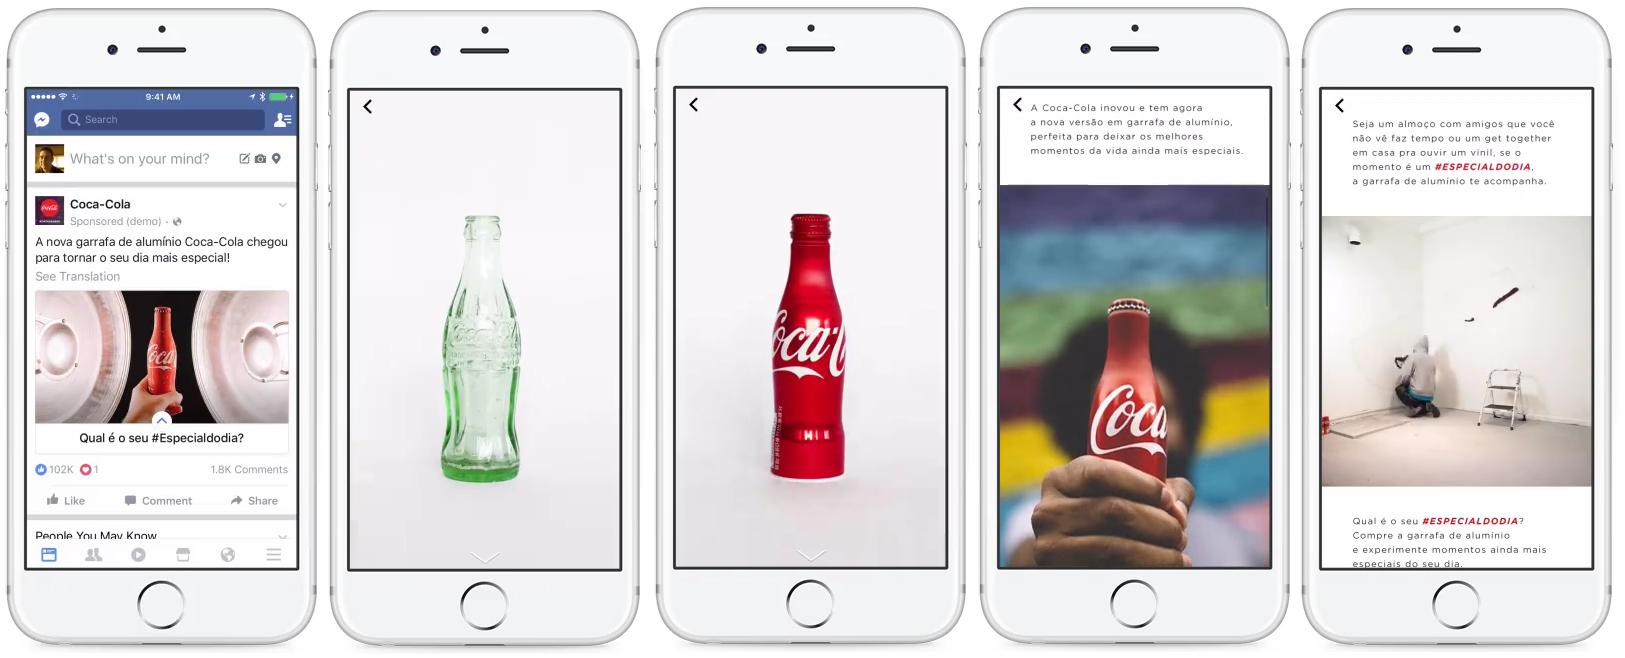 Canvas advertentie van CocaCola op Facebook